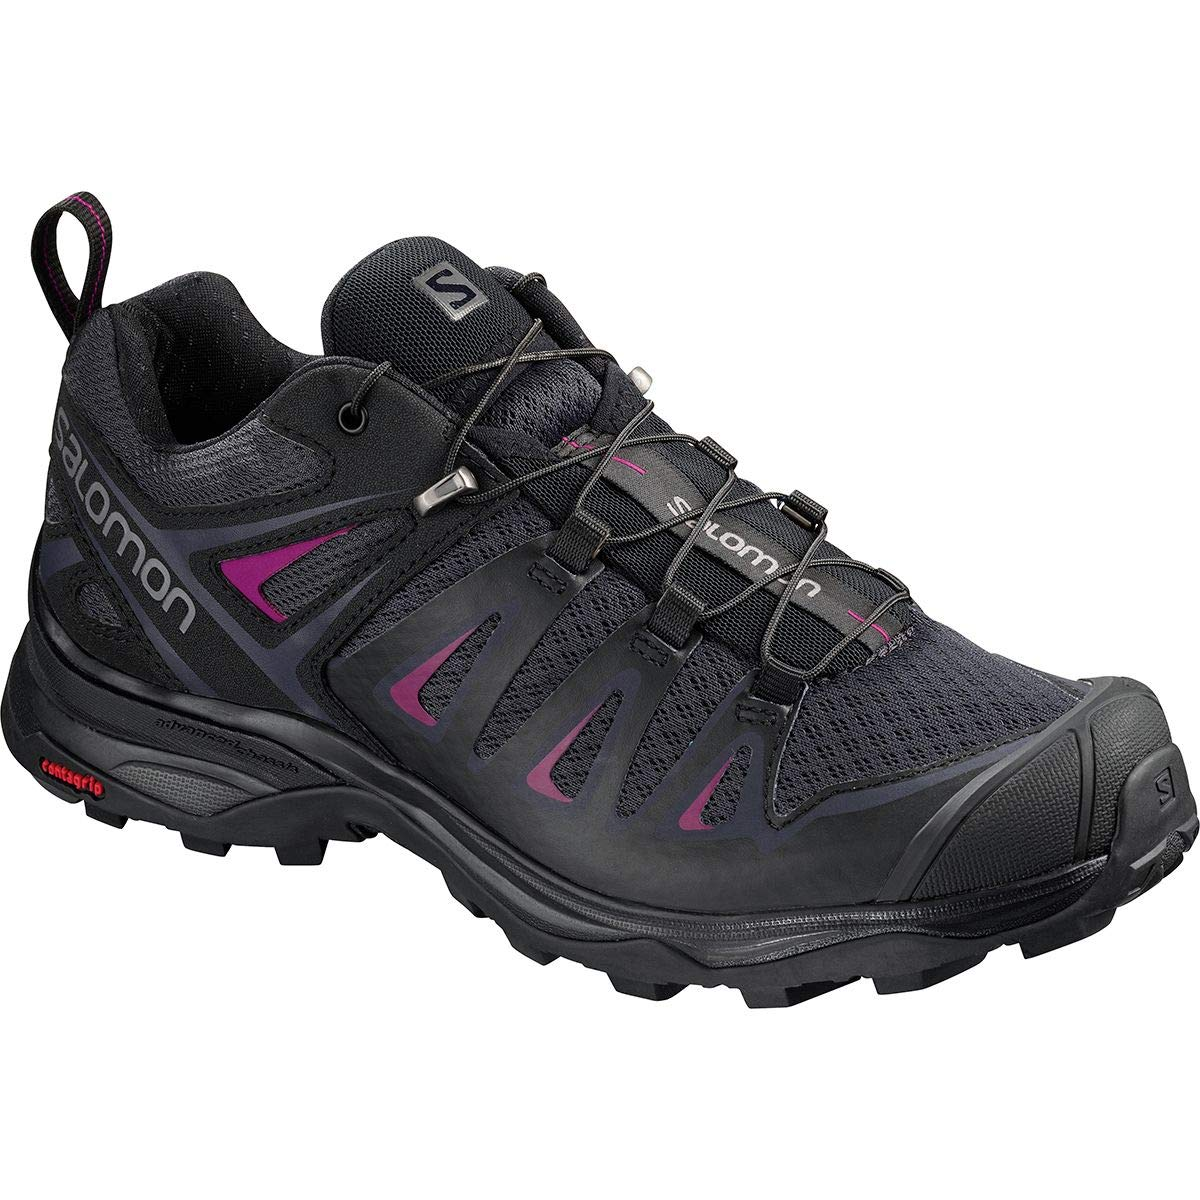 SALOMON Women's X Ultra 3 W Trail Running Shoe, Graphite/Black/Citronelle, 8 M US by SALOMON